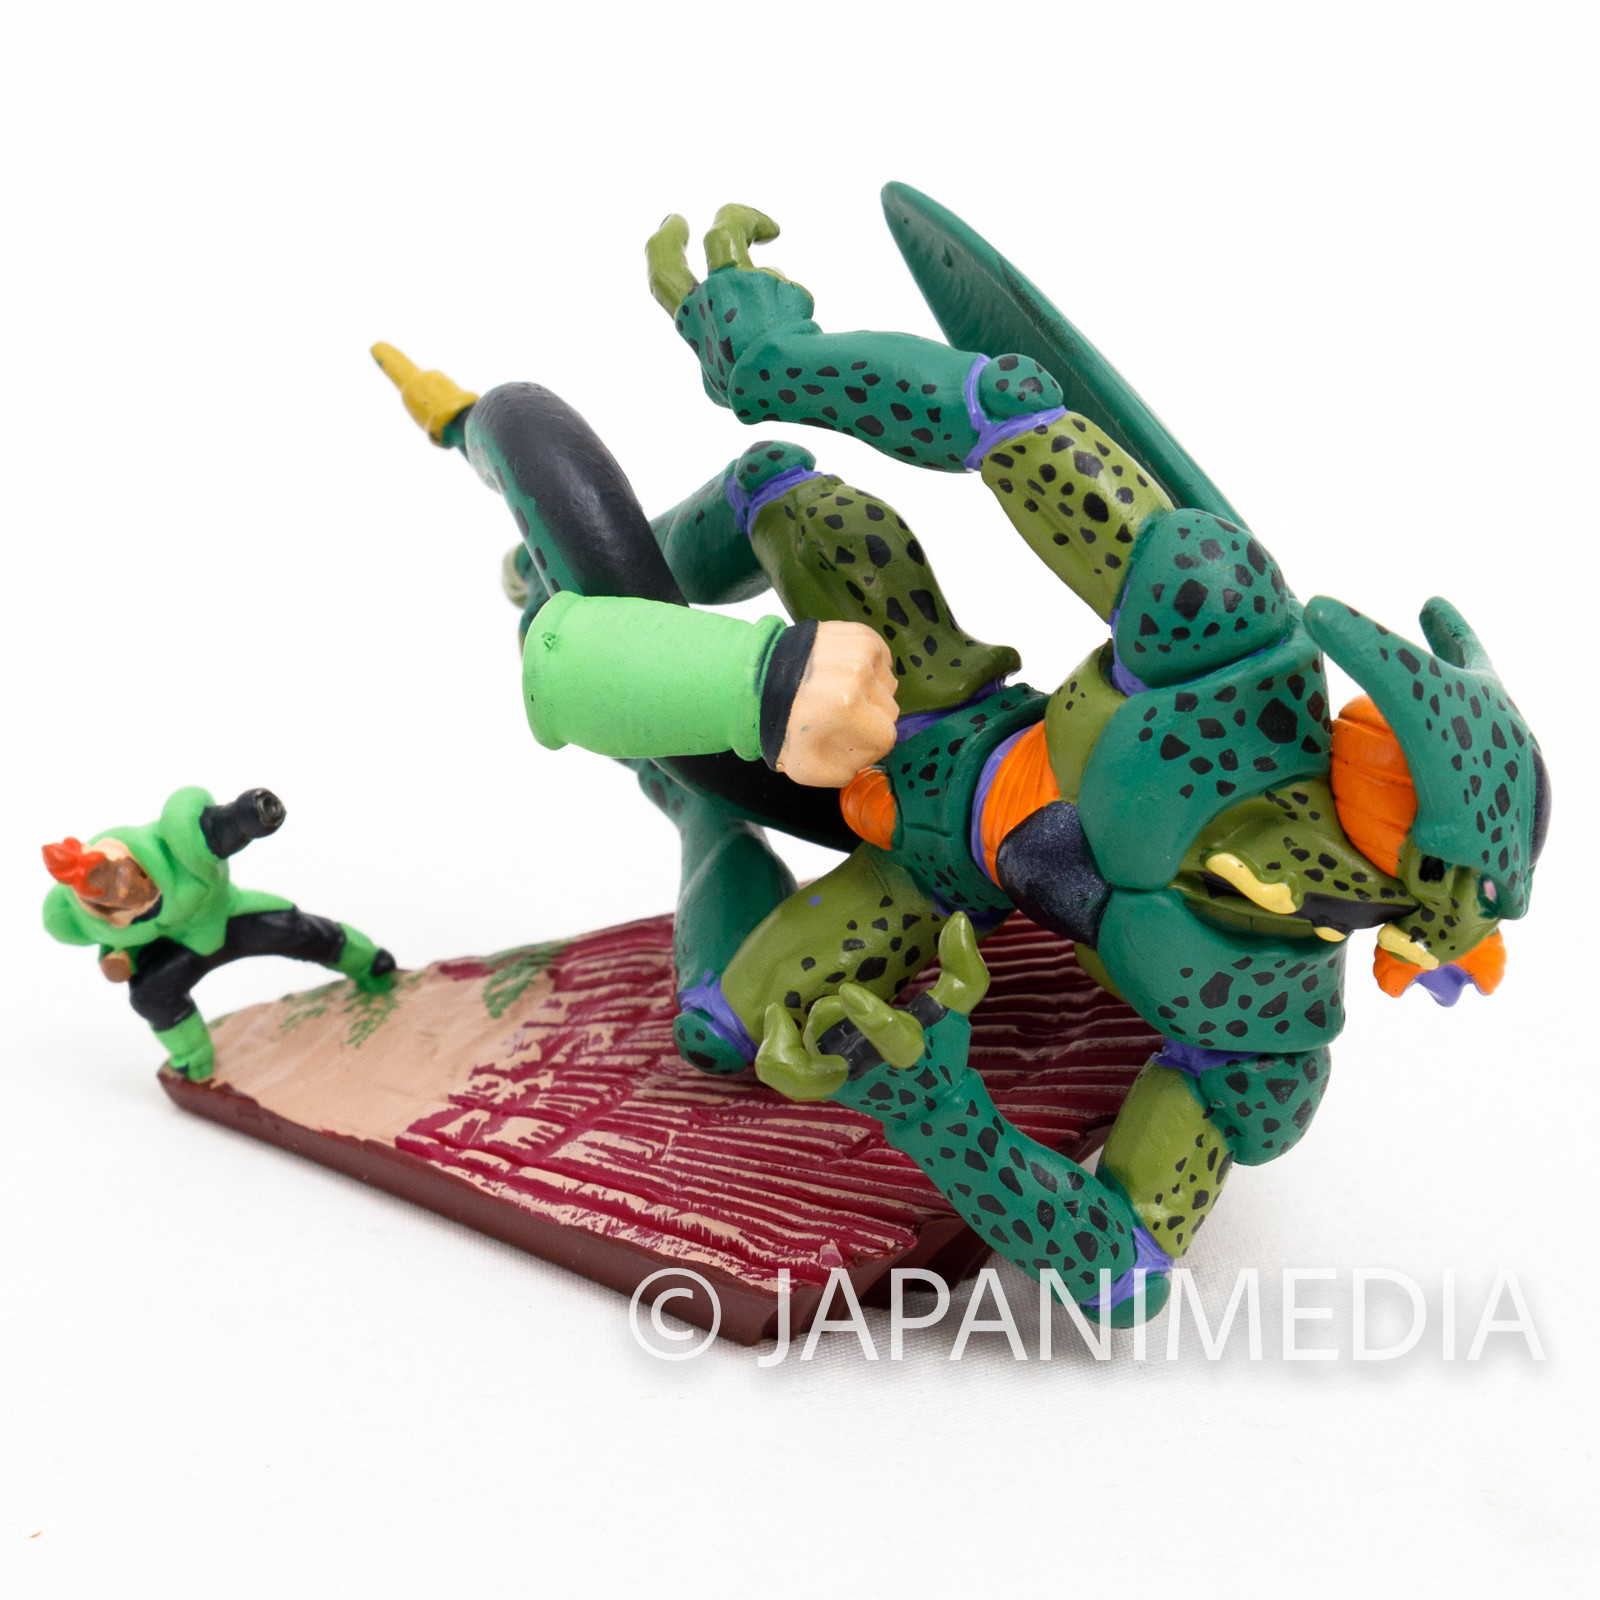 Dragon Ball Z Android 16 vs Cell Diorama Figure JAPAN CAPSULE